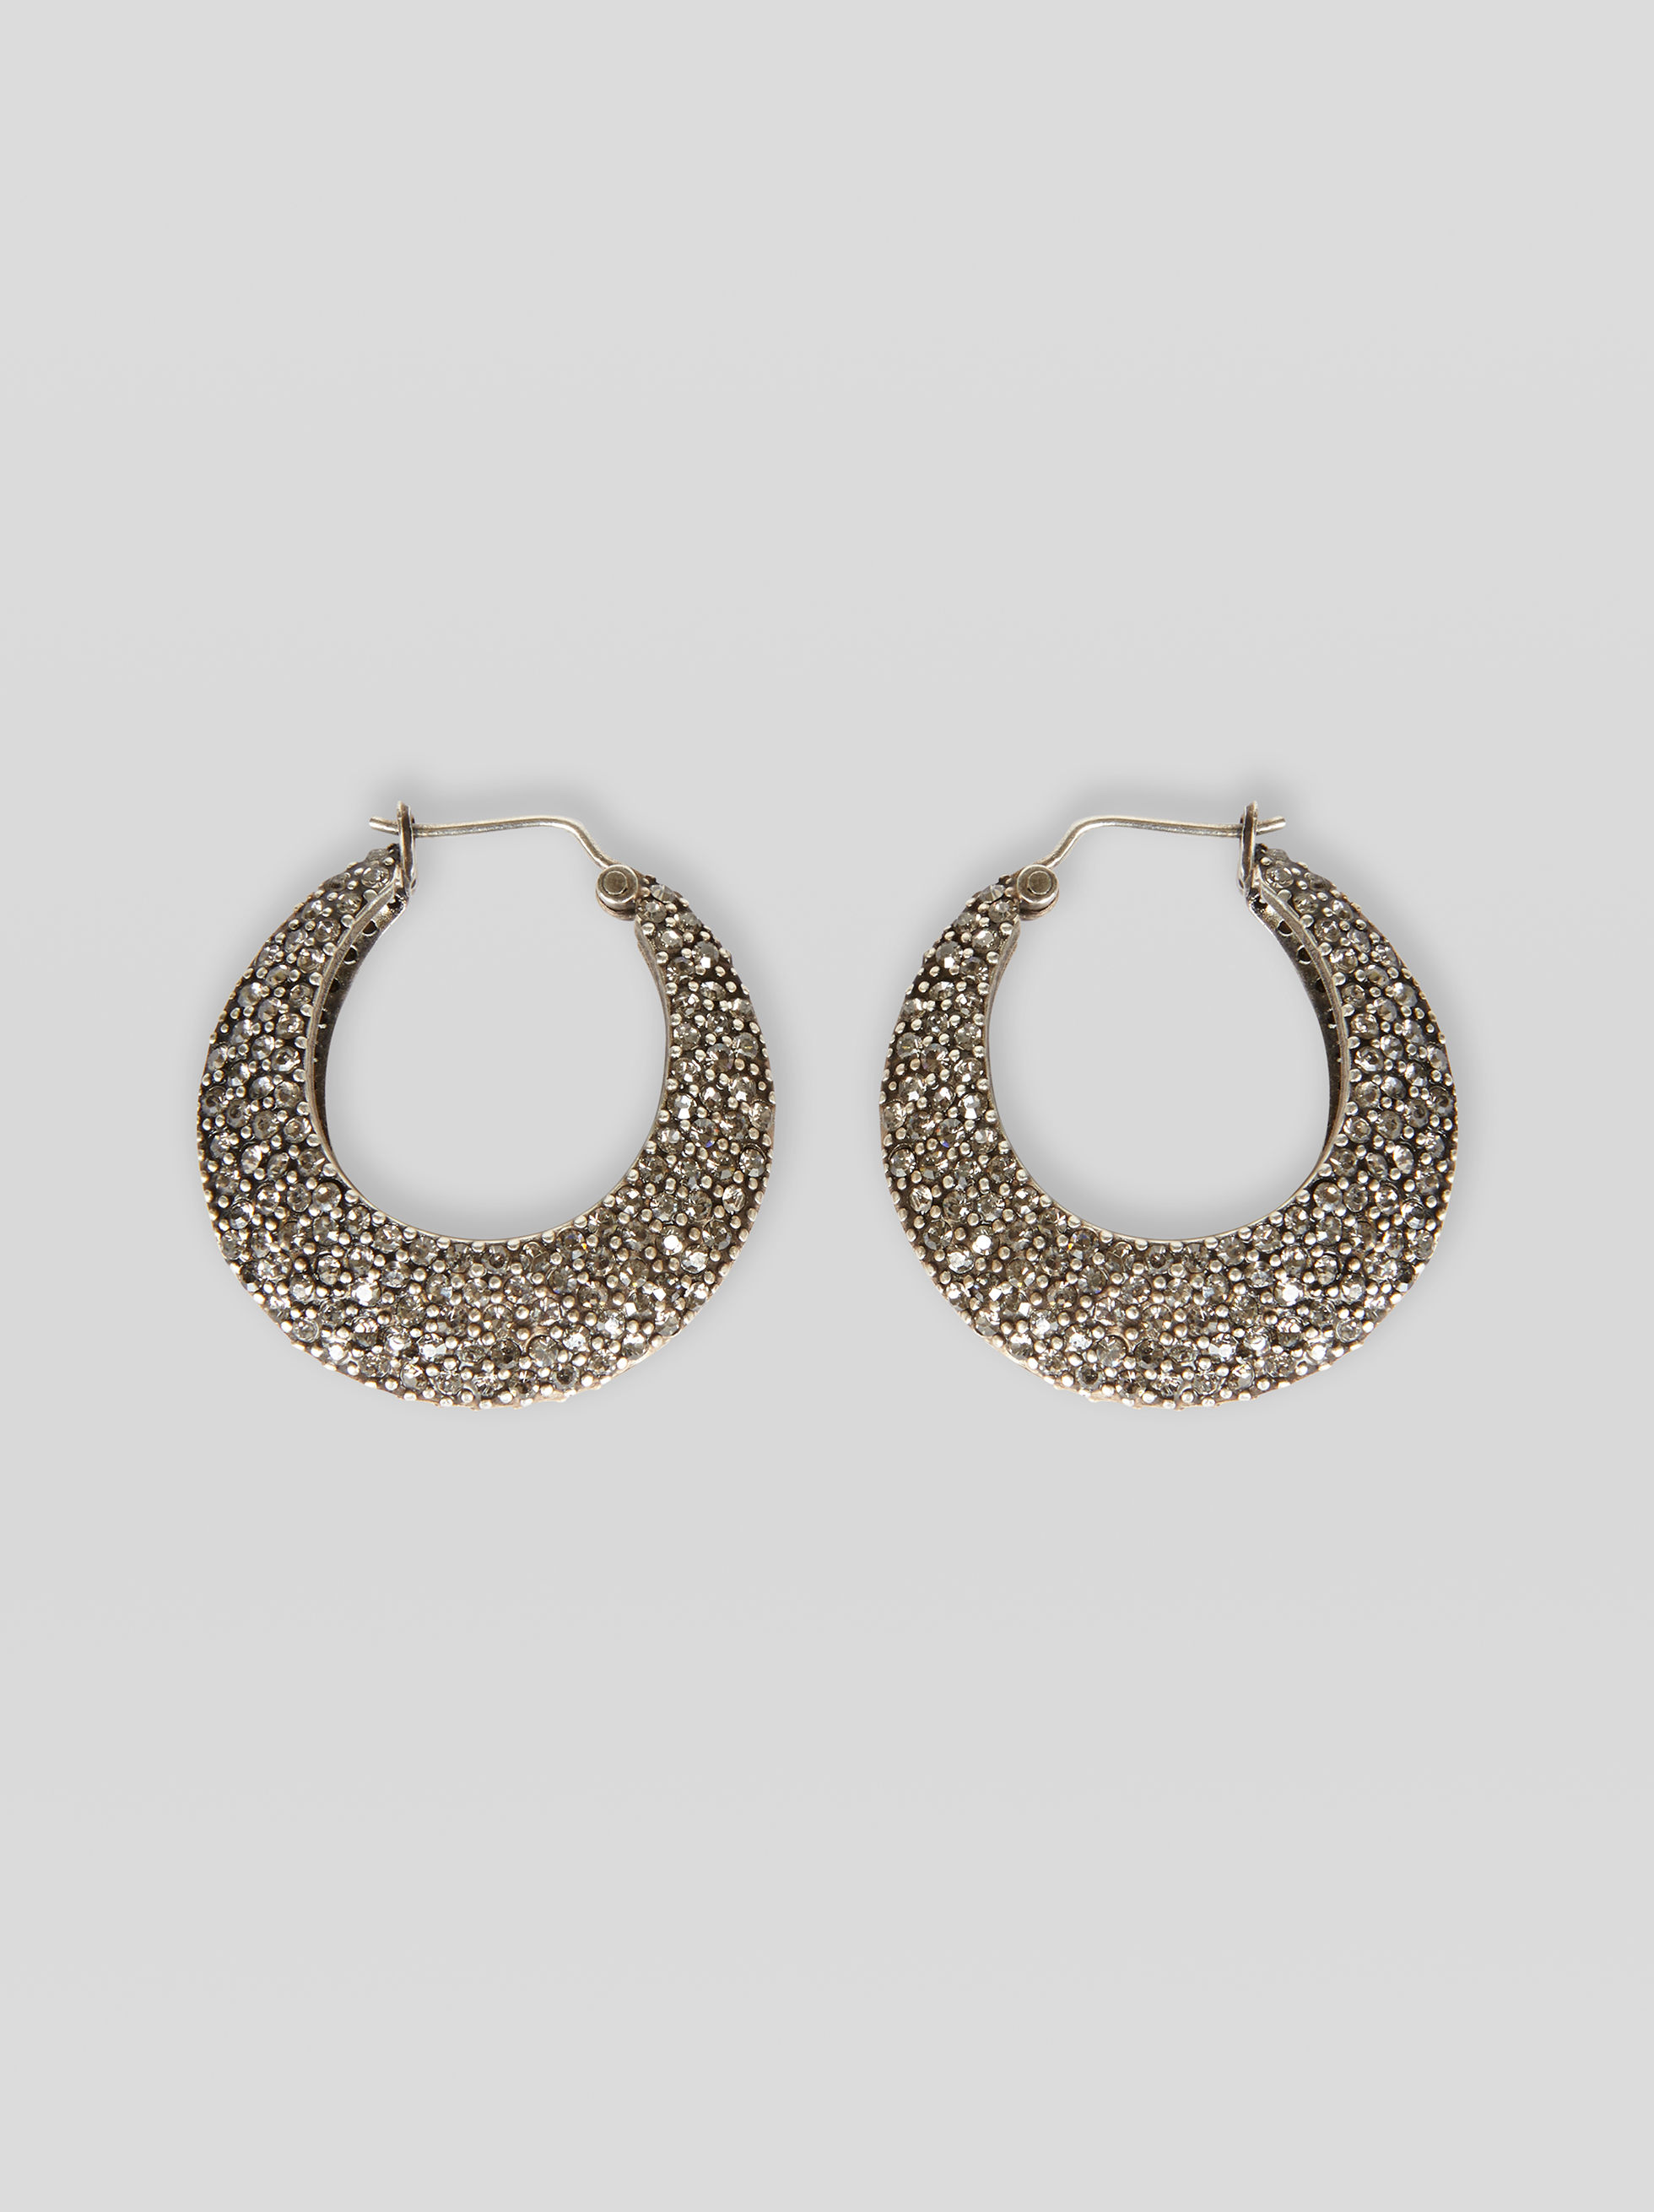 CIRCULAR EARRINGS WITH RHINESTONES